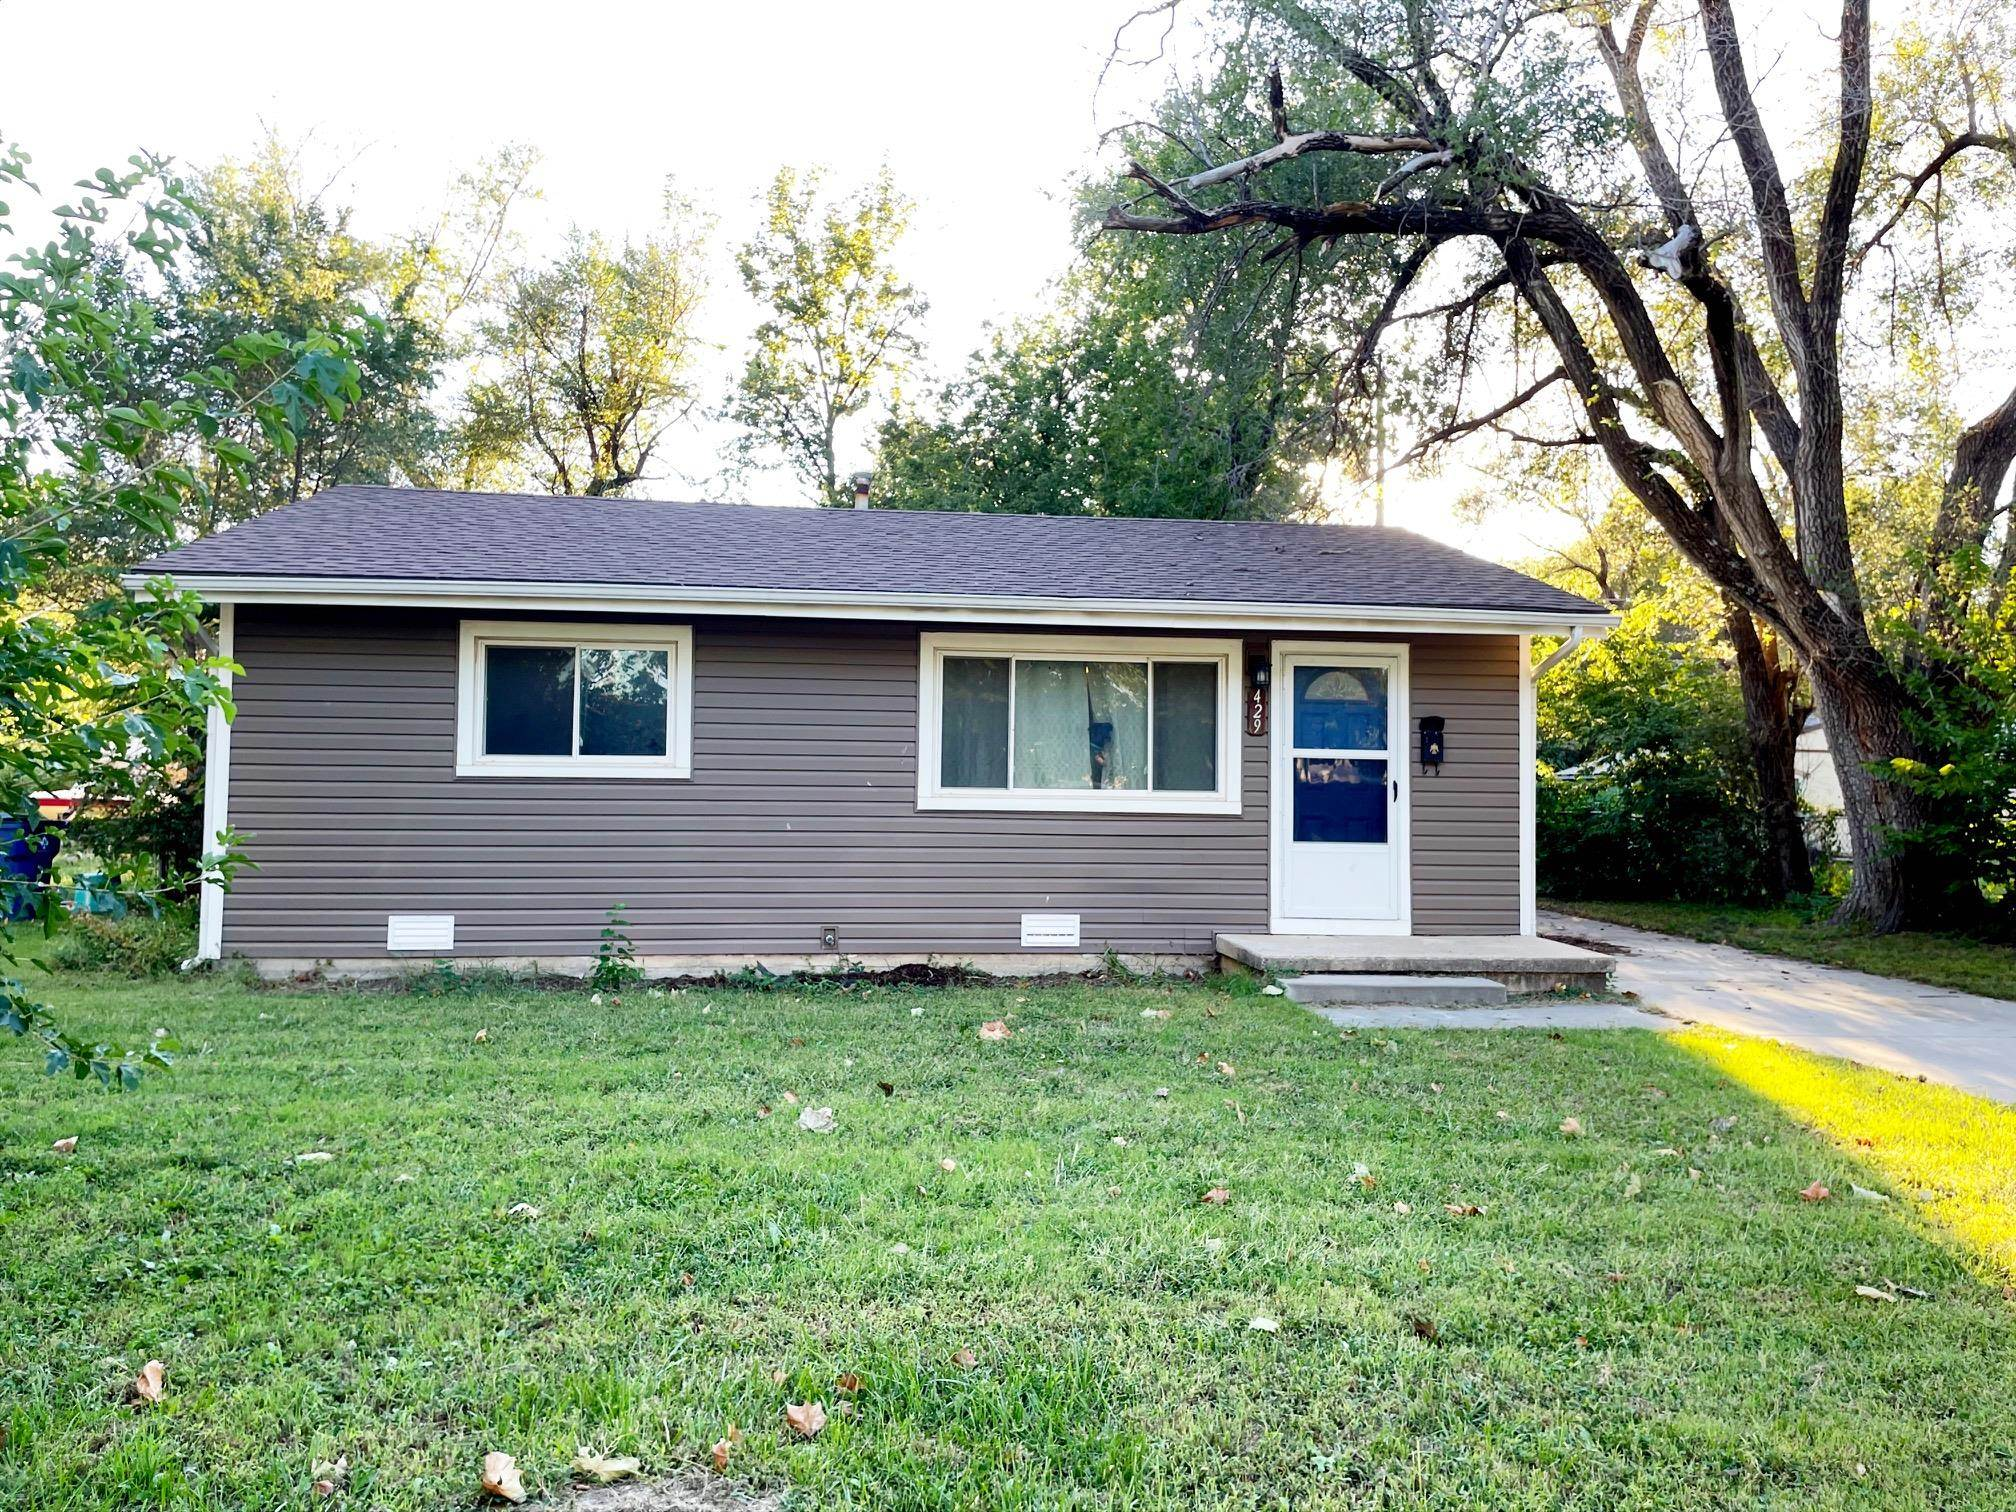 Cute-as-a-button ranch that is ready for its new owners located in Valley Center. Move in ready with